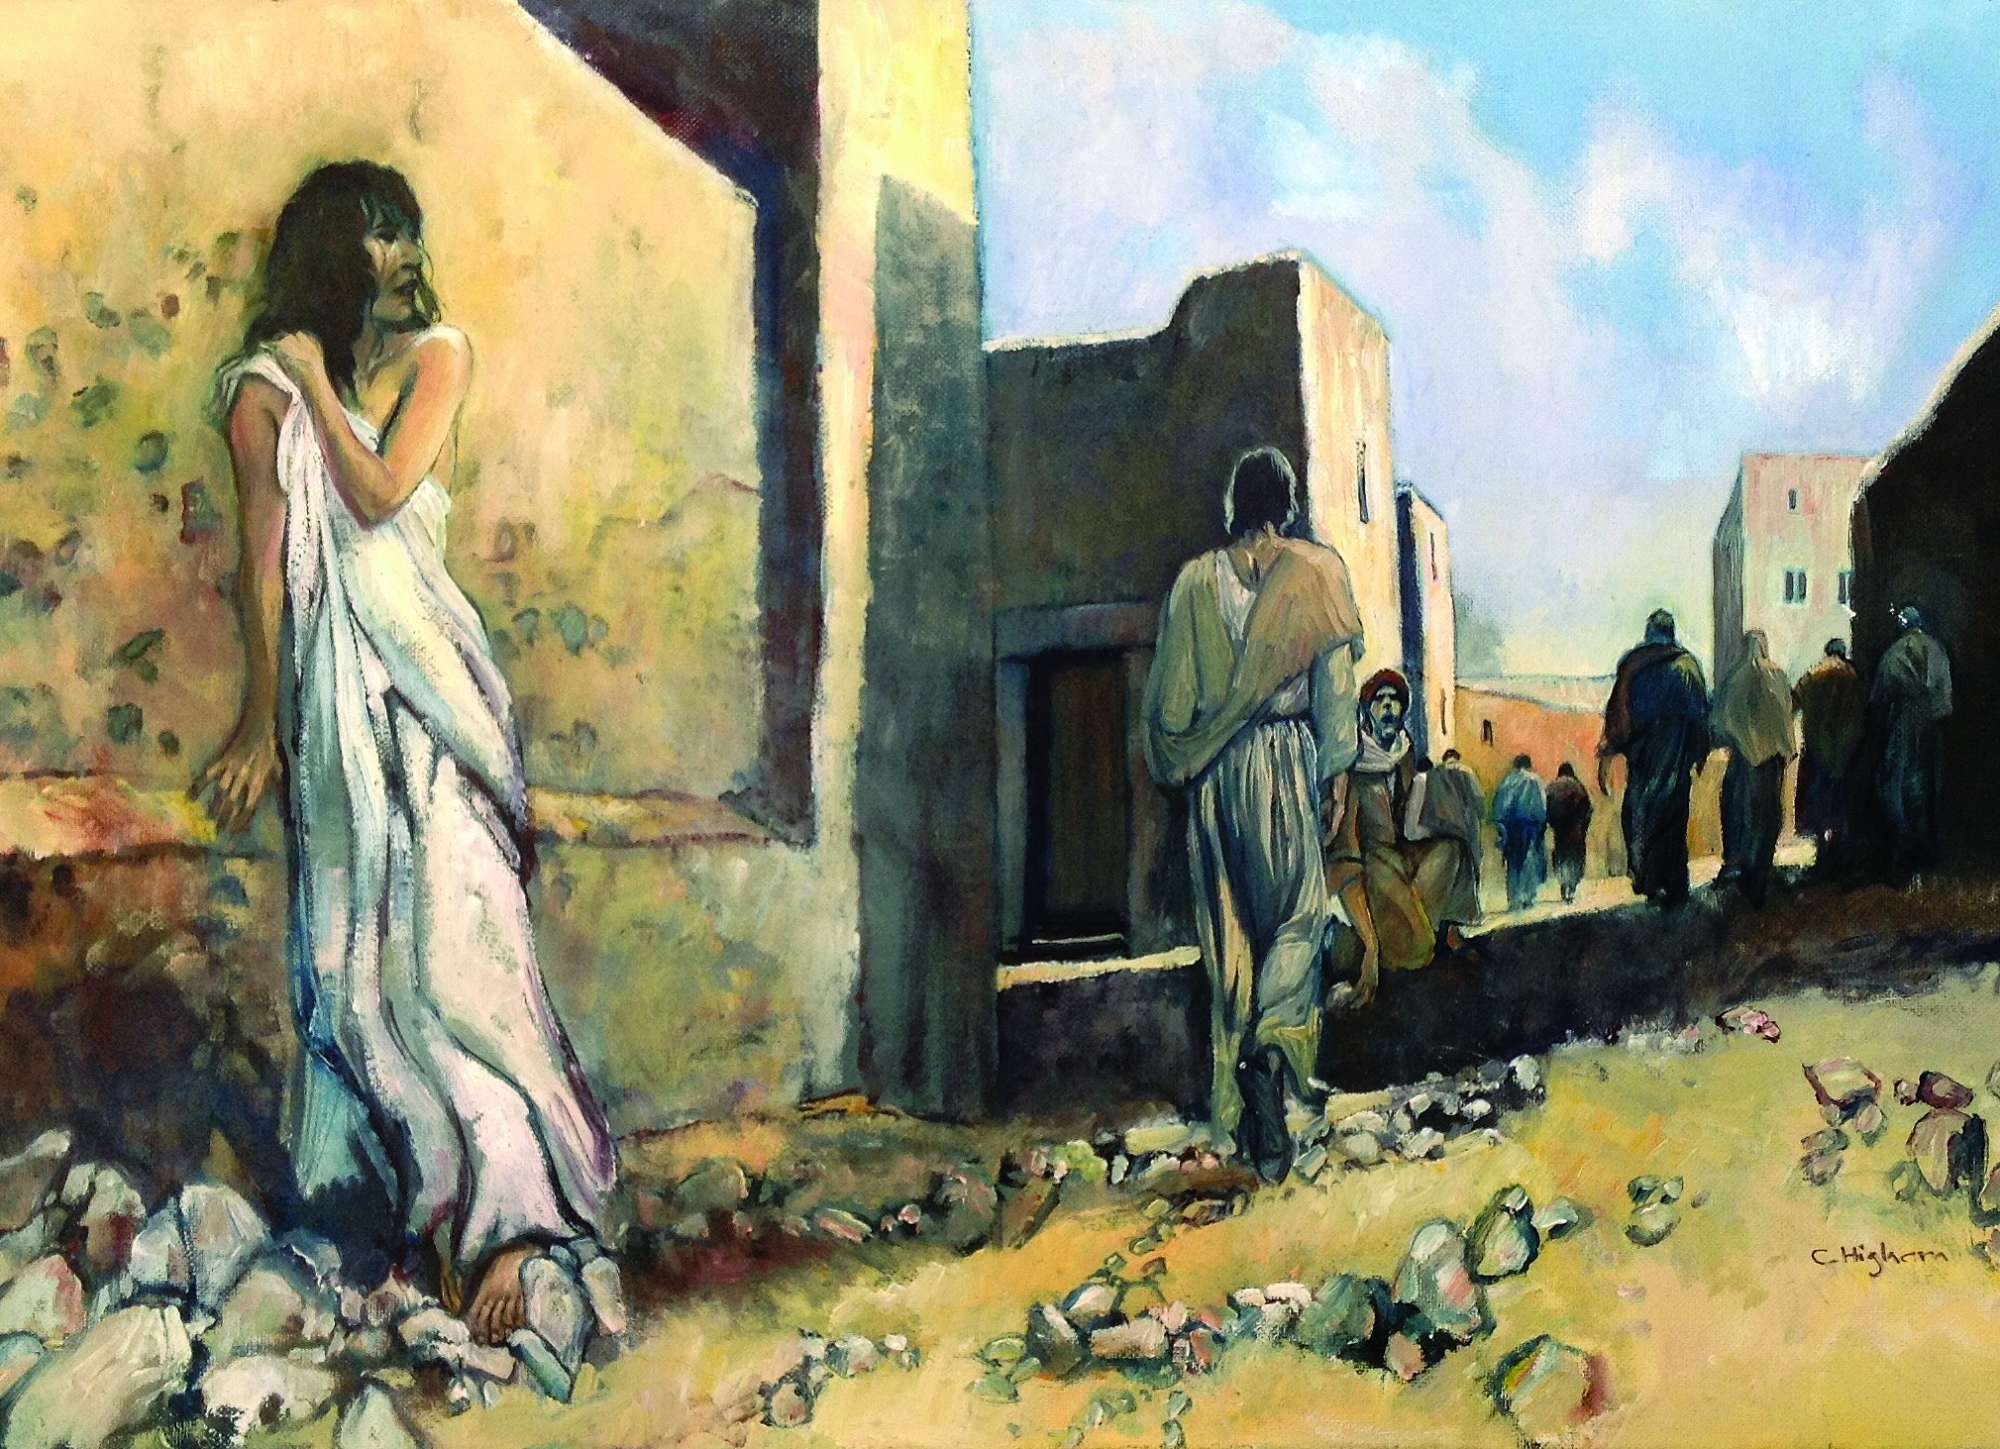 Jesus, the Woman and the Pharisees - John 8:1-11